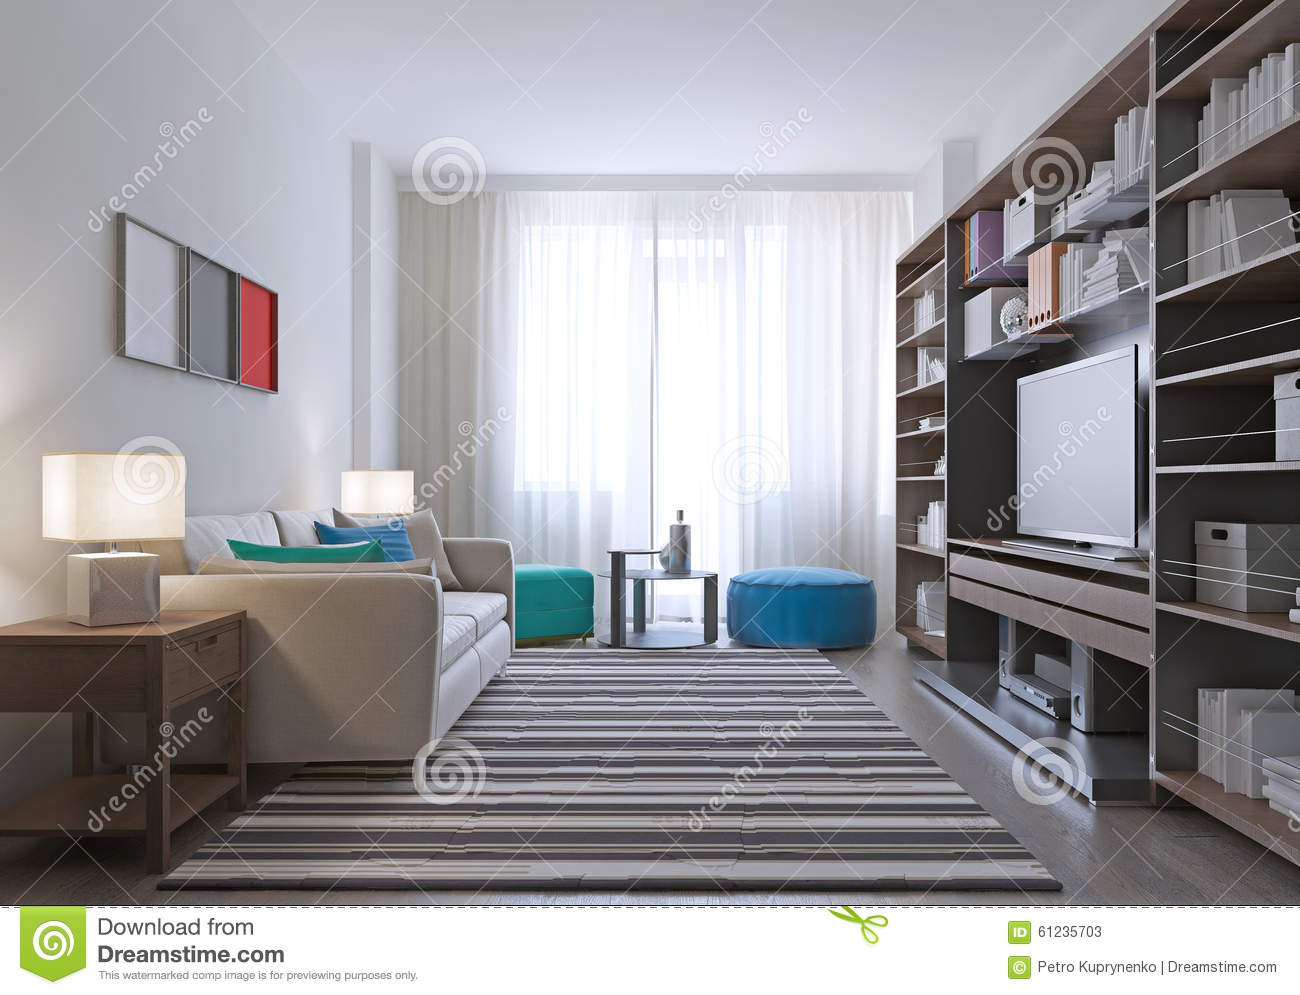 Contemporary Lounge Room Design Stock Illustration - Illustration of ...